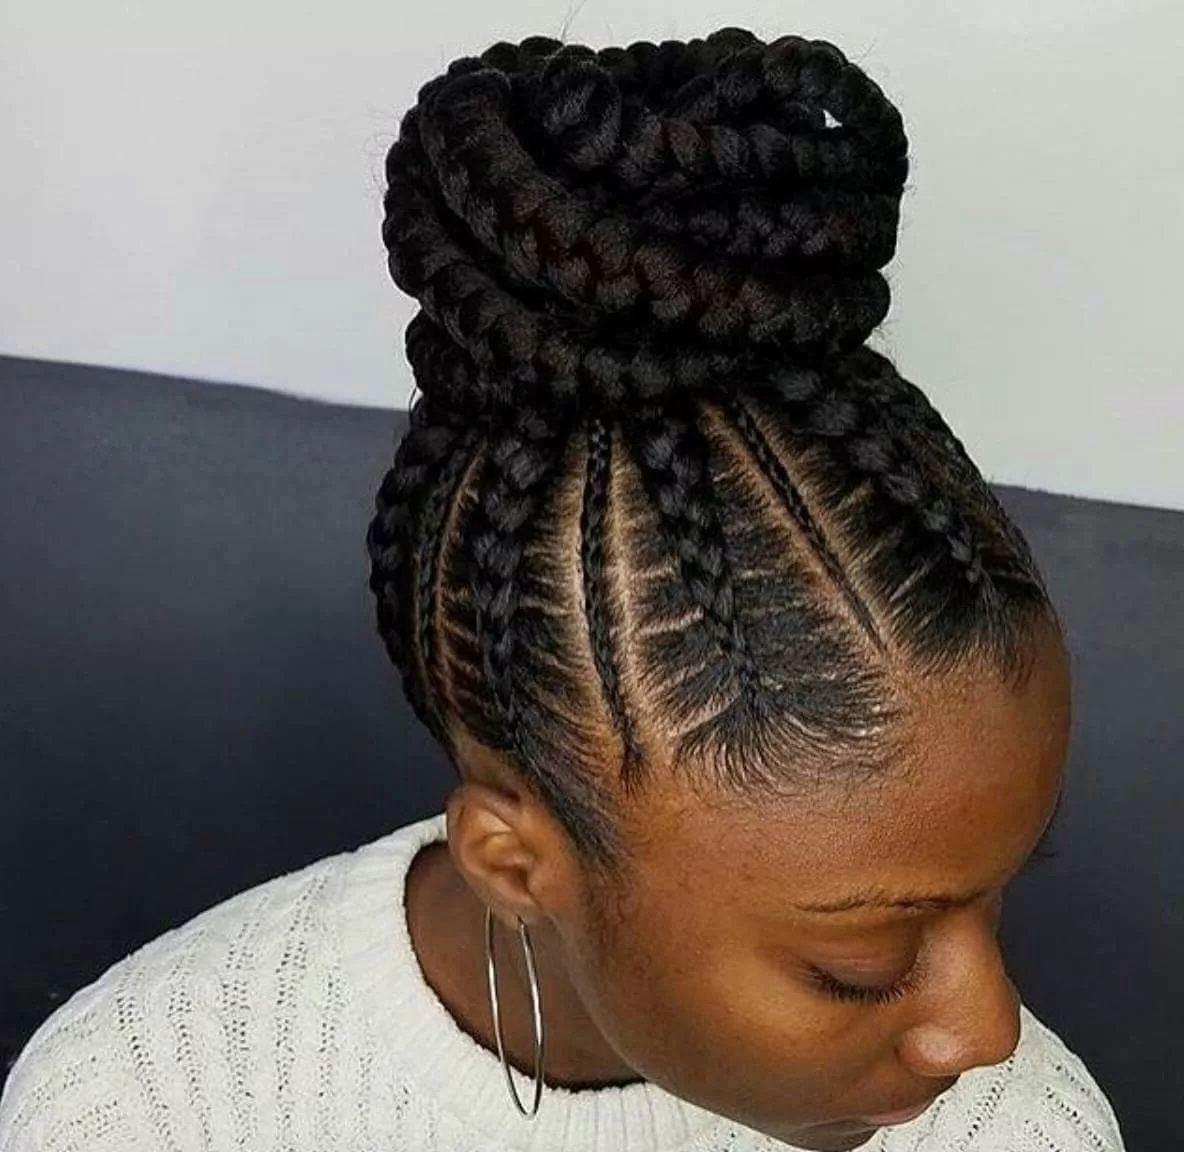 Beautiful Braided Hairstyles For Long Hair Hairstyle Designs Ideas In 2018 Braided Up Hairstyles For Black Hair (View 2 of 15)